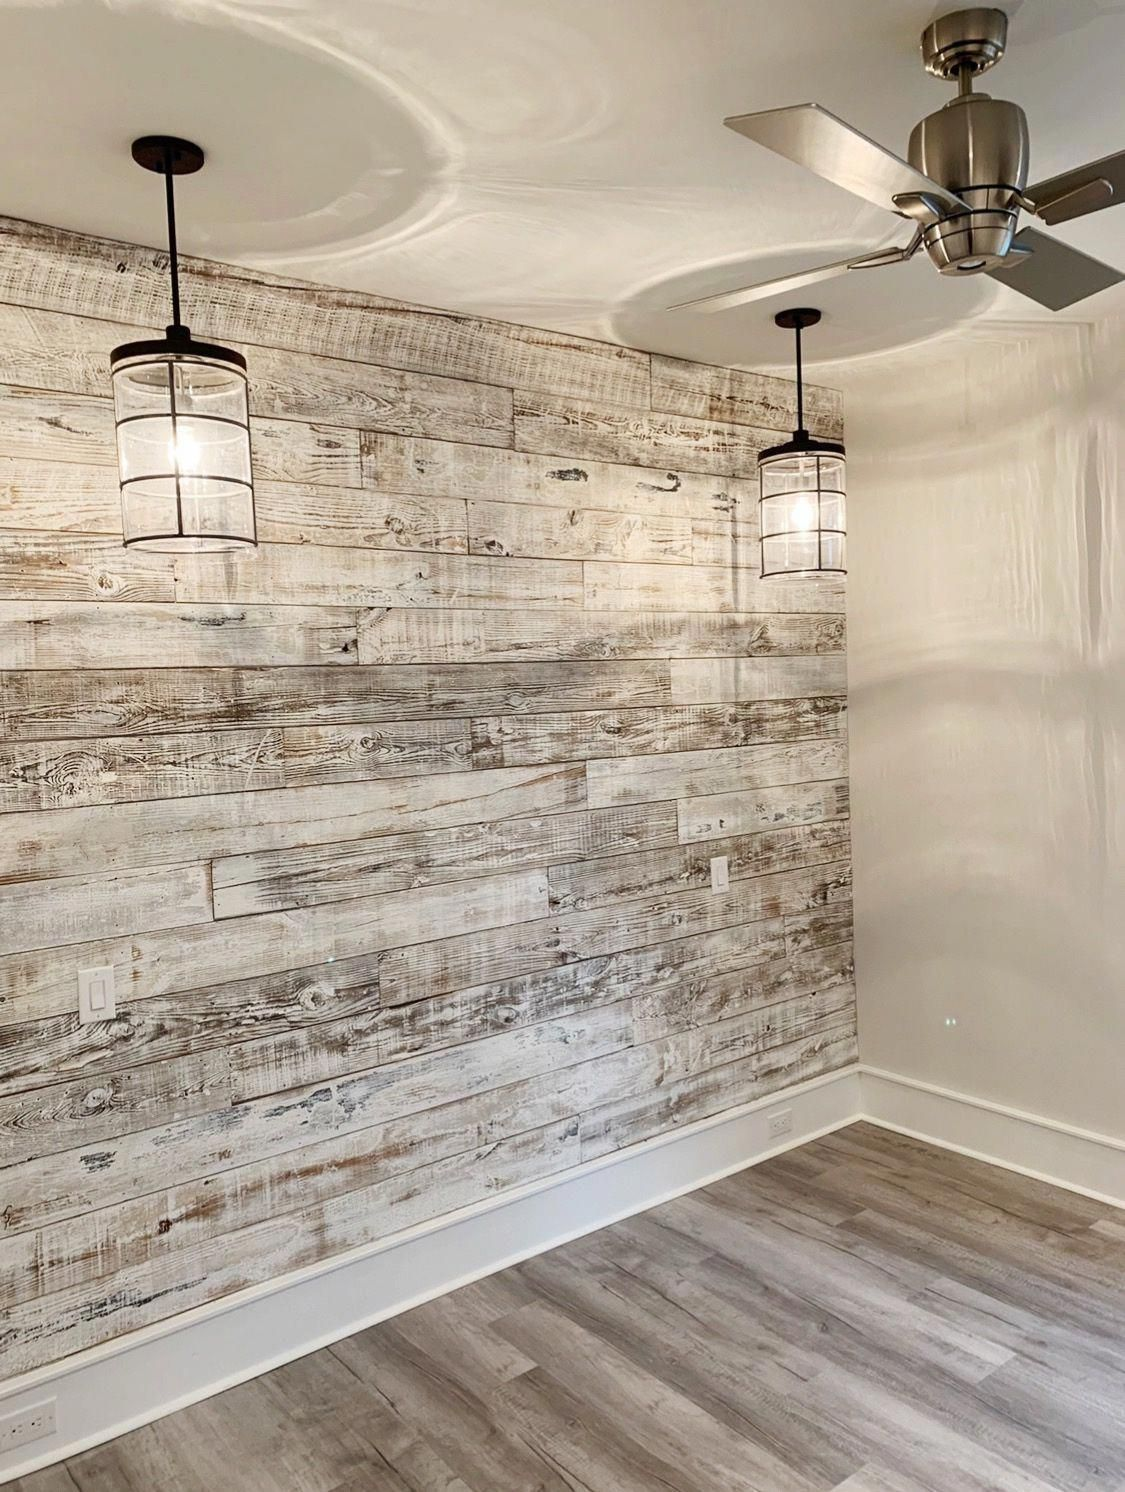 My Latest Reclaimed Wood Wall With A White Washed Finish Marniedailydesign Marniecustomhomes Ma Wood Wall Design Wood Walls Living Room Wood Walls Bedroom